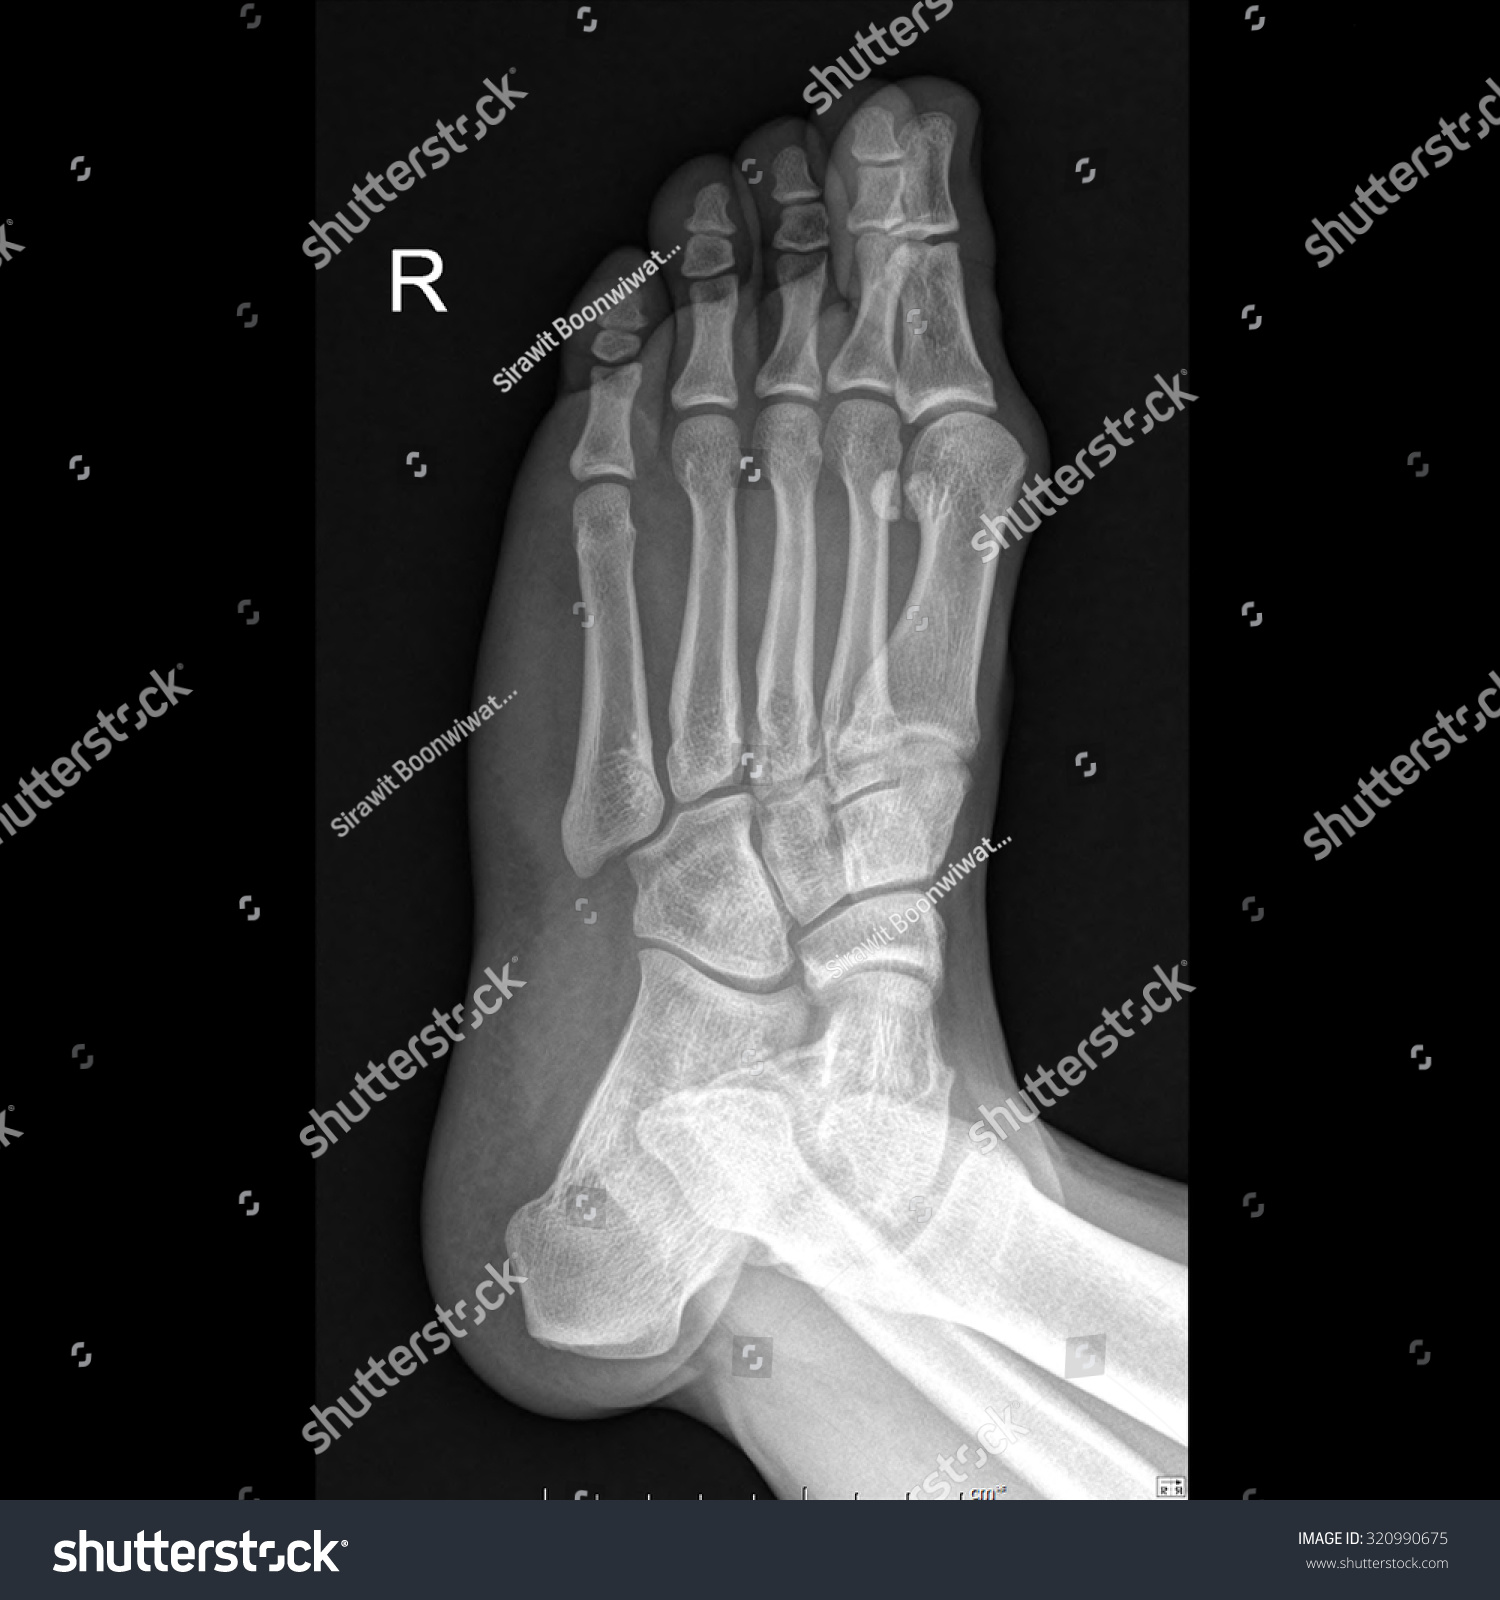 X-Ray Right Foot Human Oblique View Stock Photo 320990675 : Shutterstock